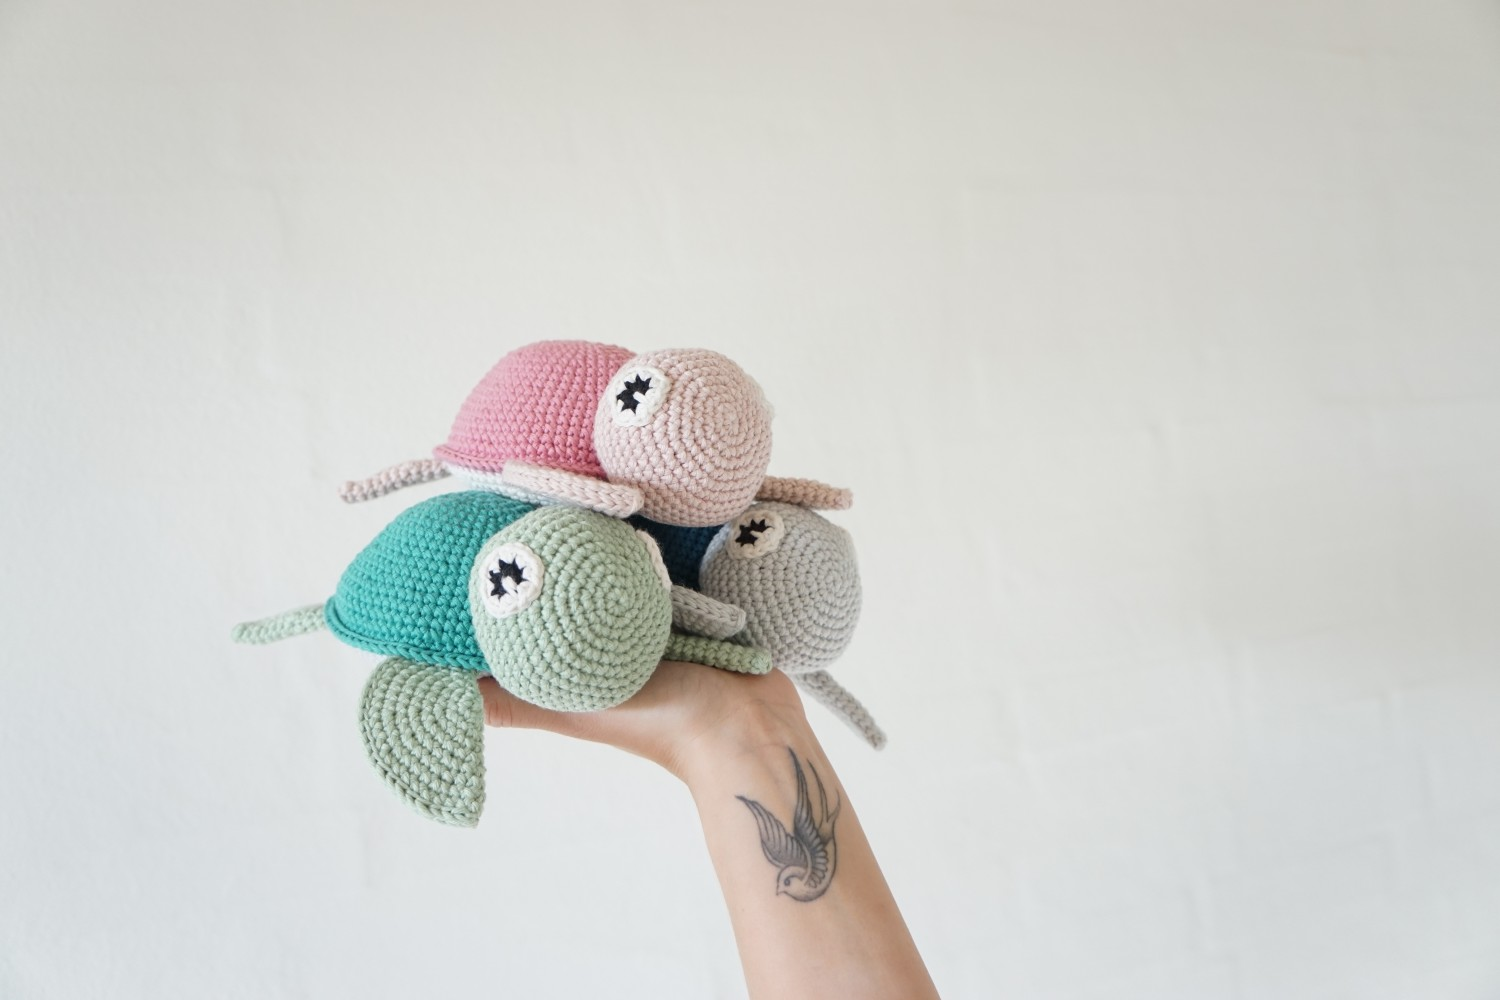 Crochet Pattern Amigurumi Turtle : Amigurumi Turtle-Free Pattern - Amigurumi Free Patterns